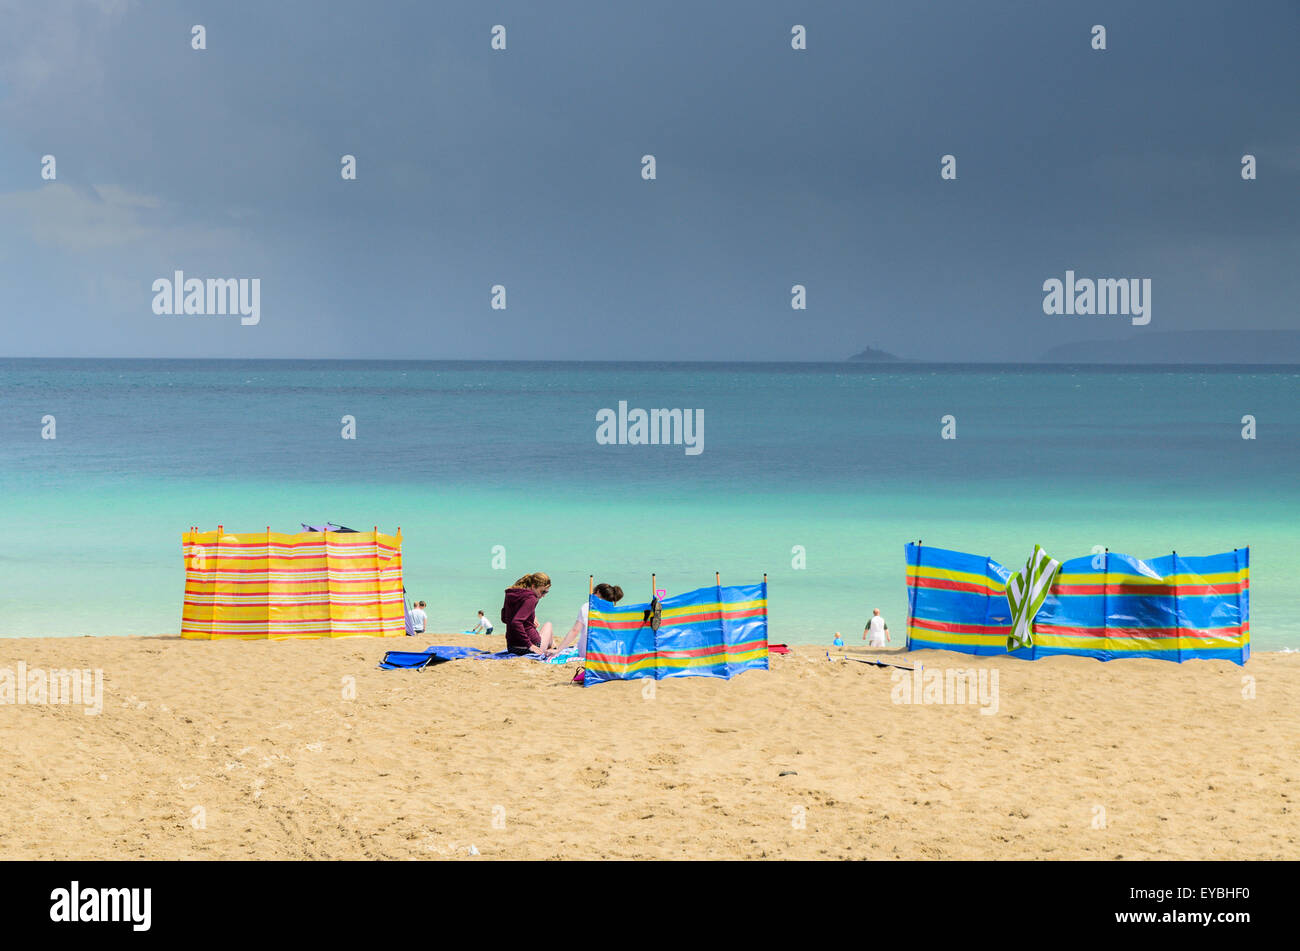 Holidaymakers on Porthgwidden Beach, St Ives, Cornwall, UK, Europe. - Stock Image